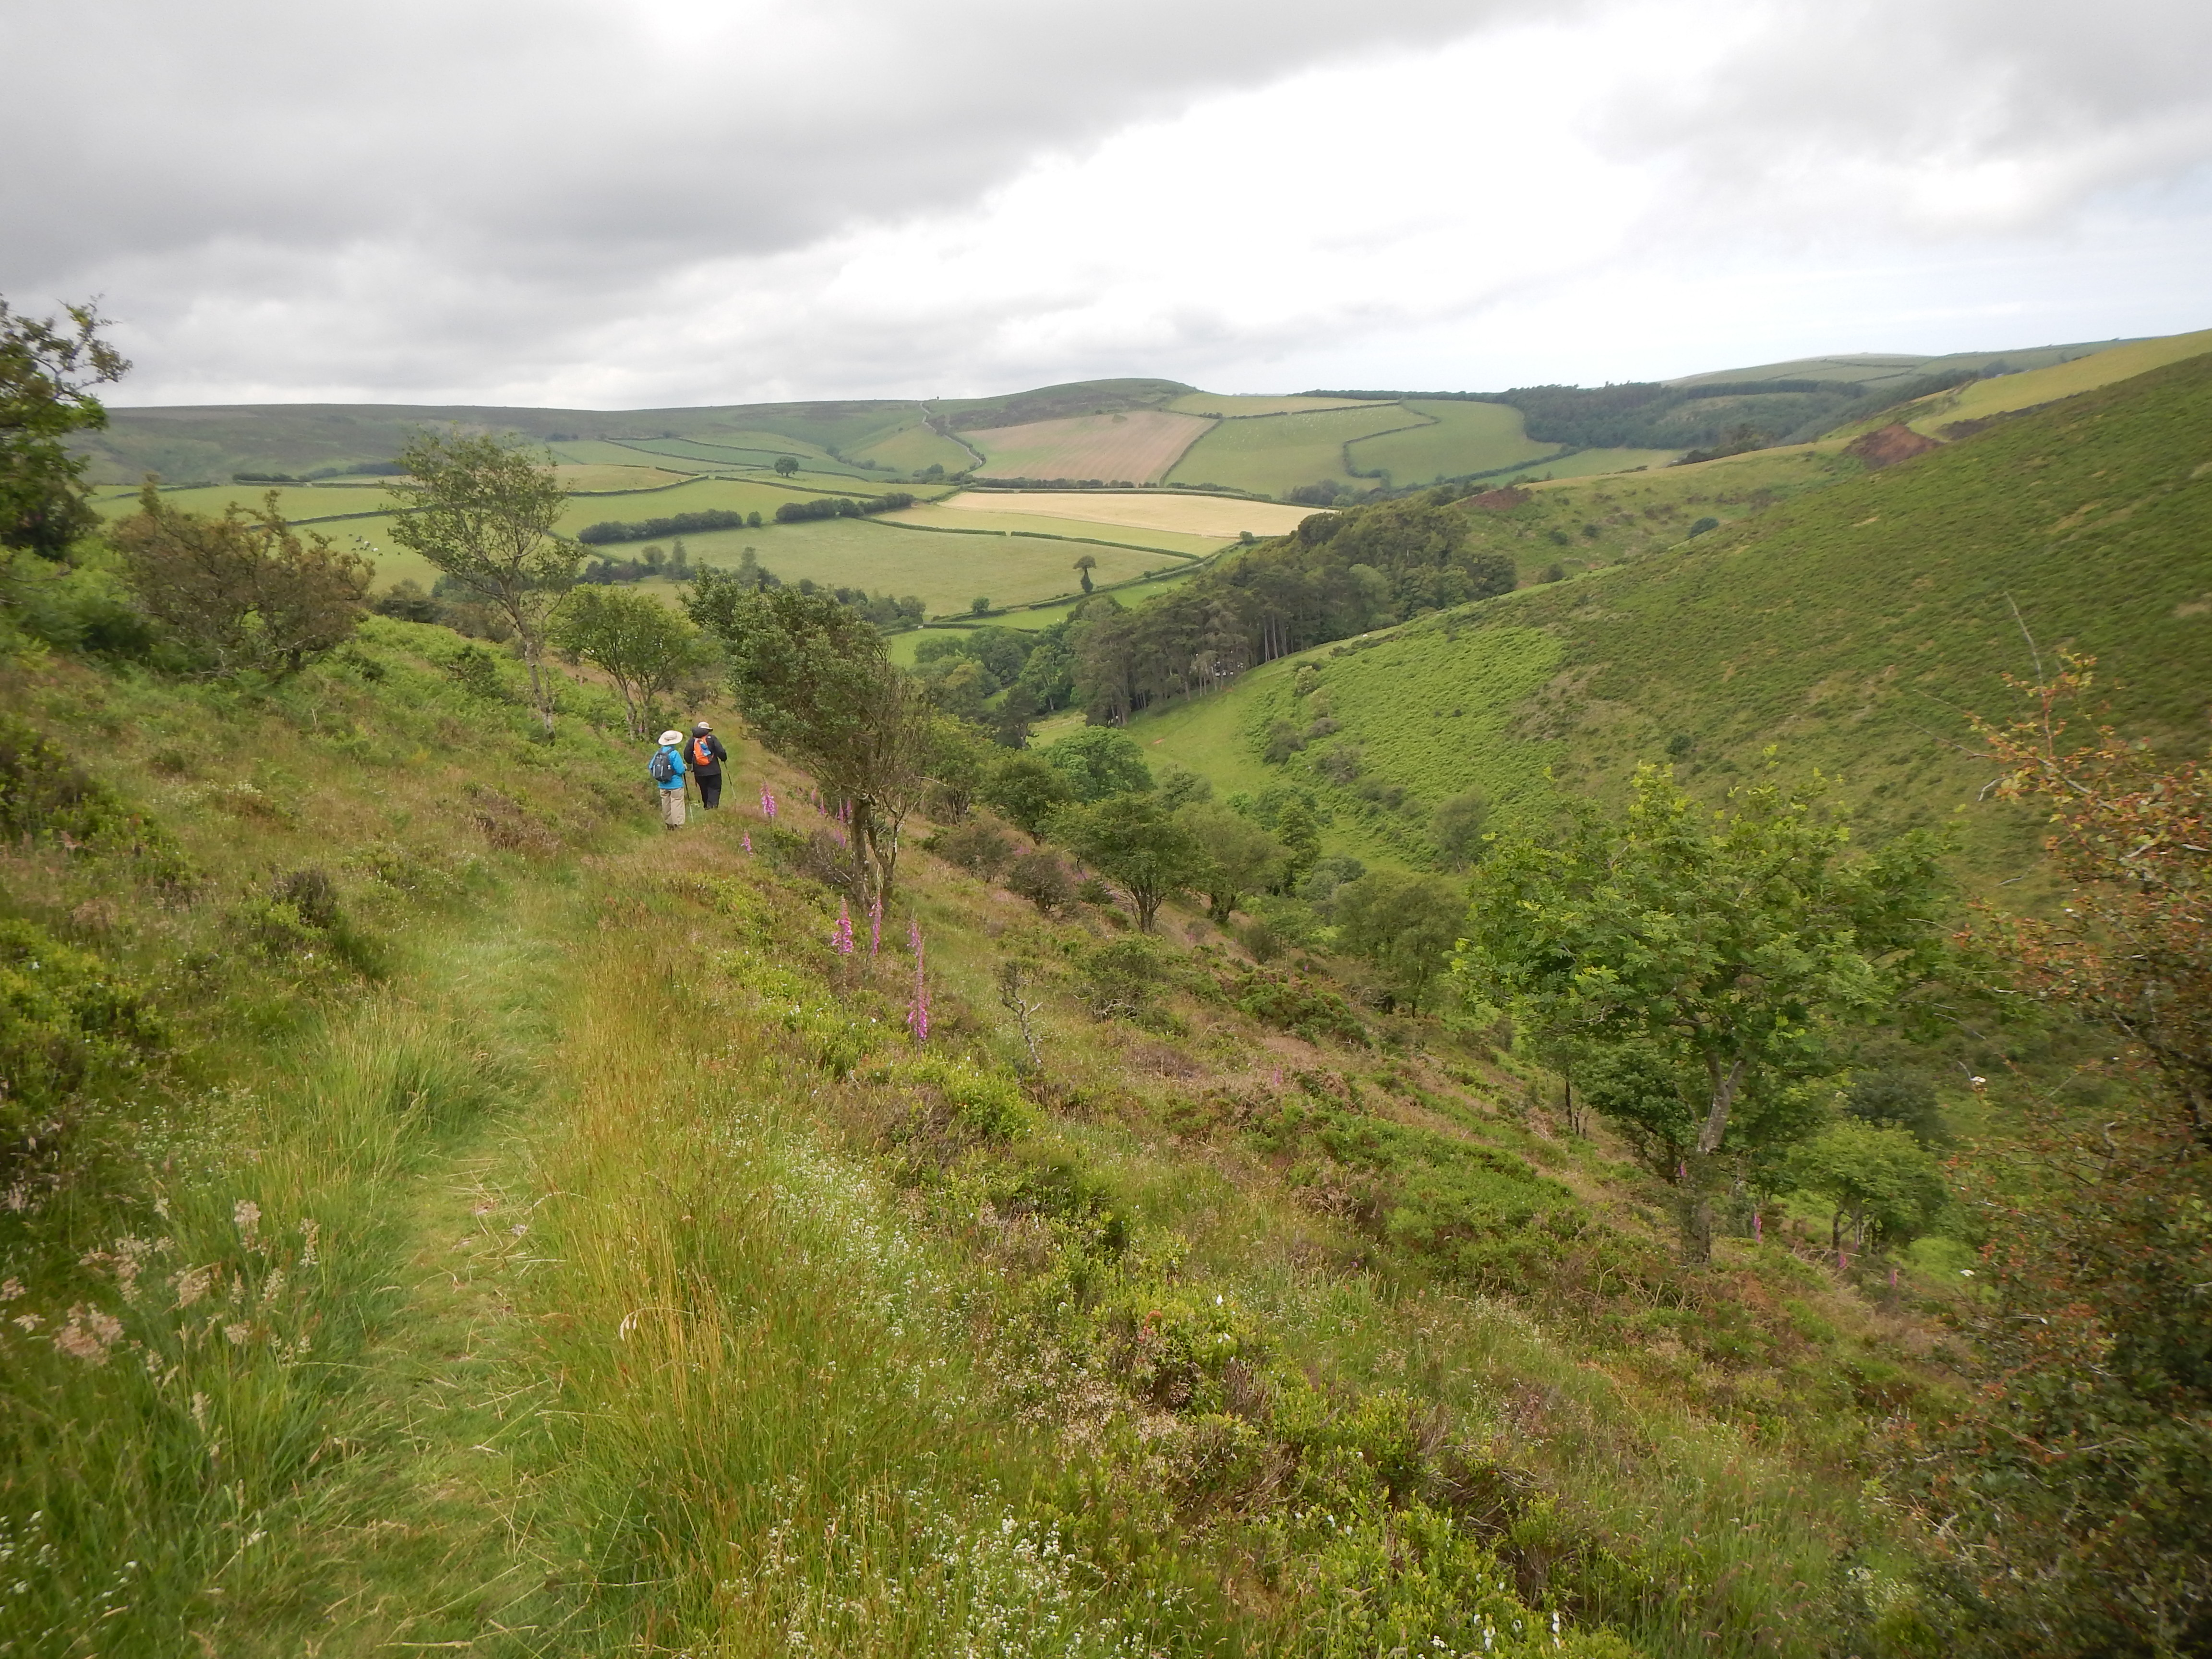 Approaching Lorna Doone country; the descent to Oare.